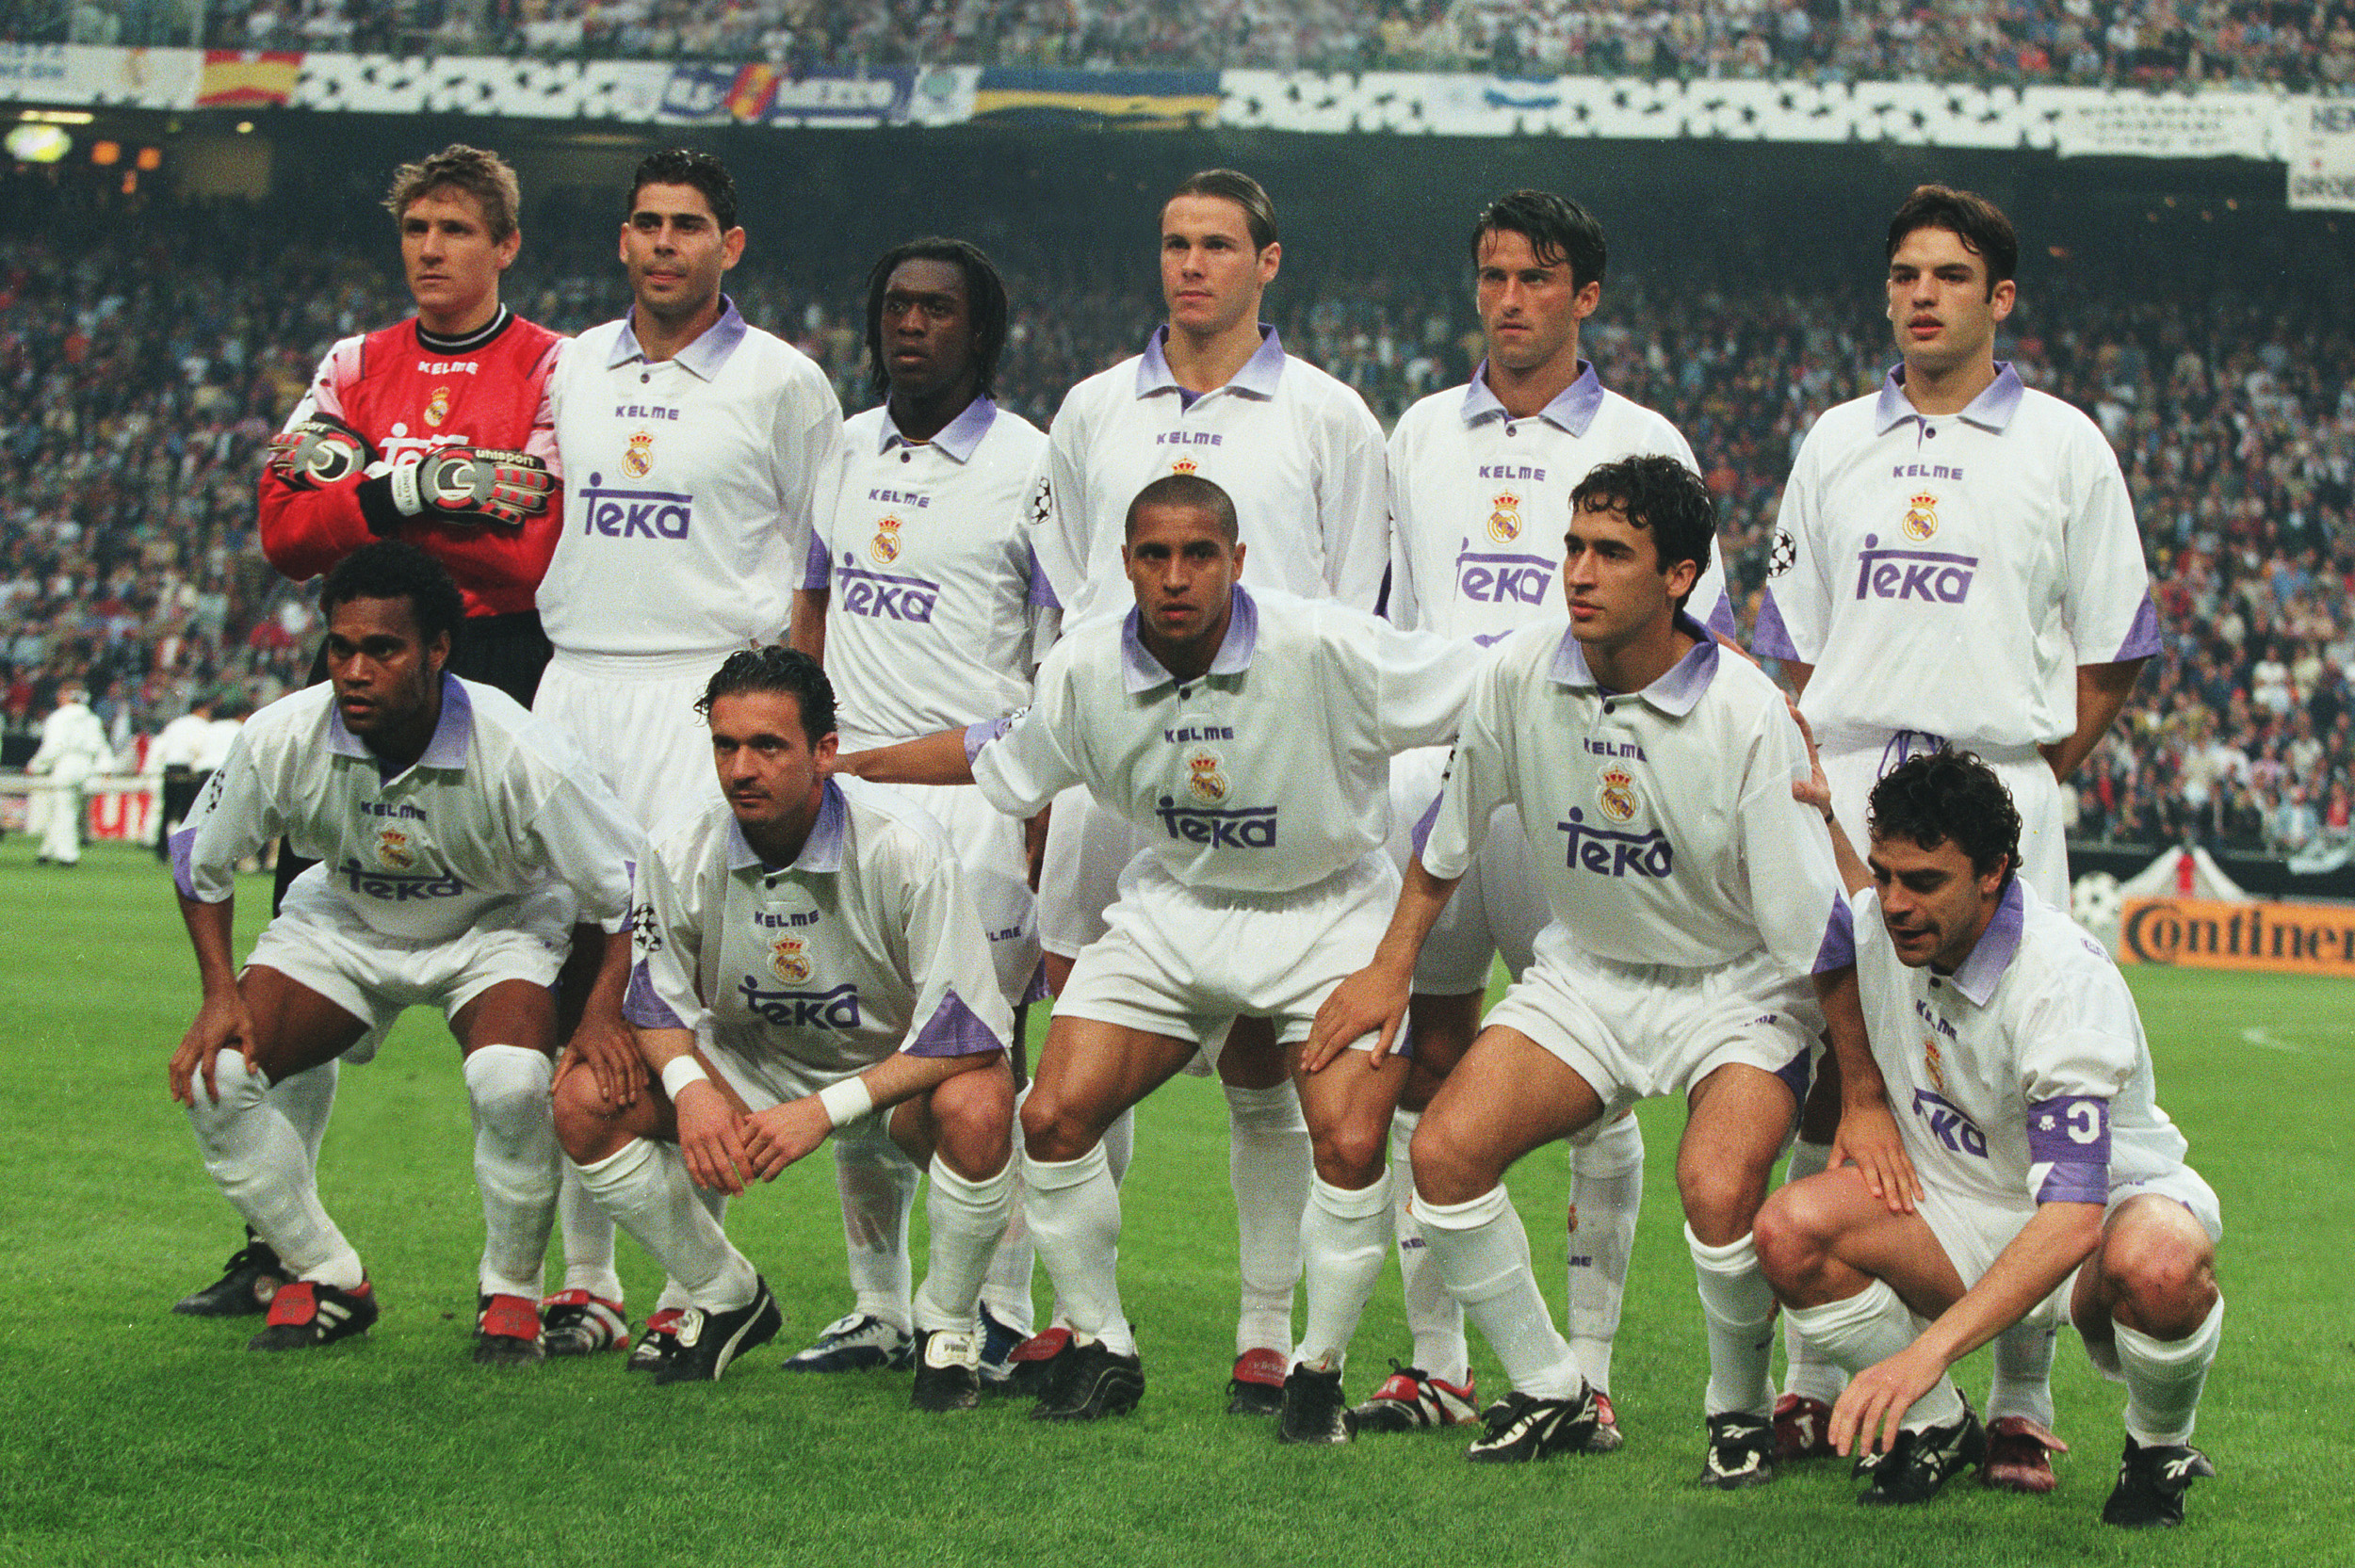 Real Madrid Vs Juventus 1998 Champions League Final